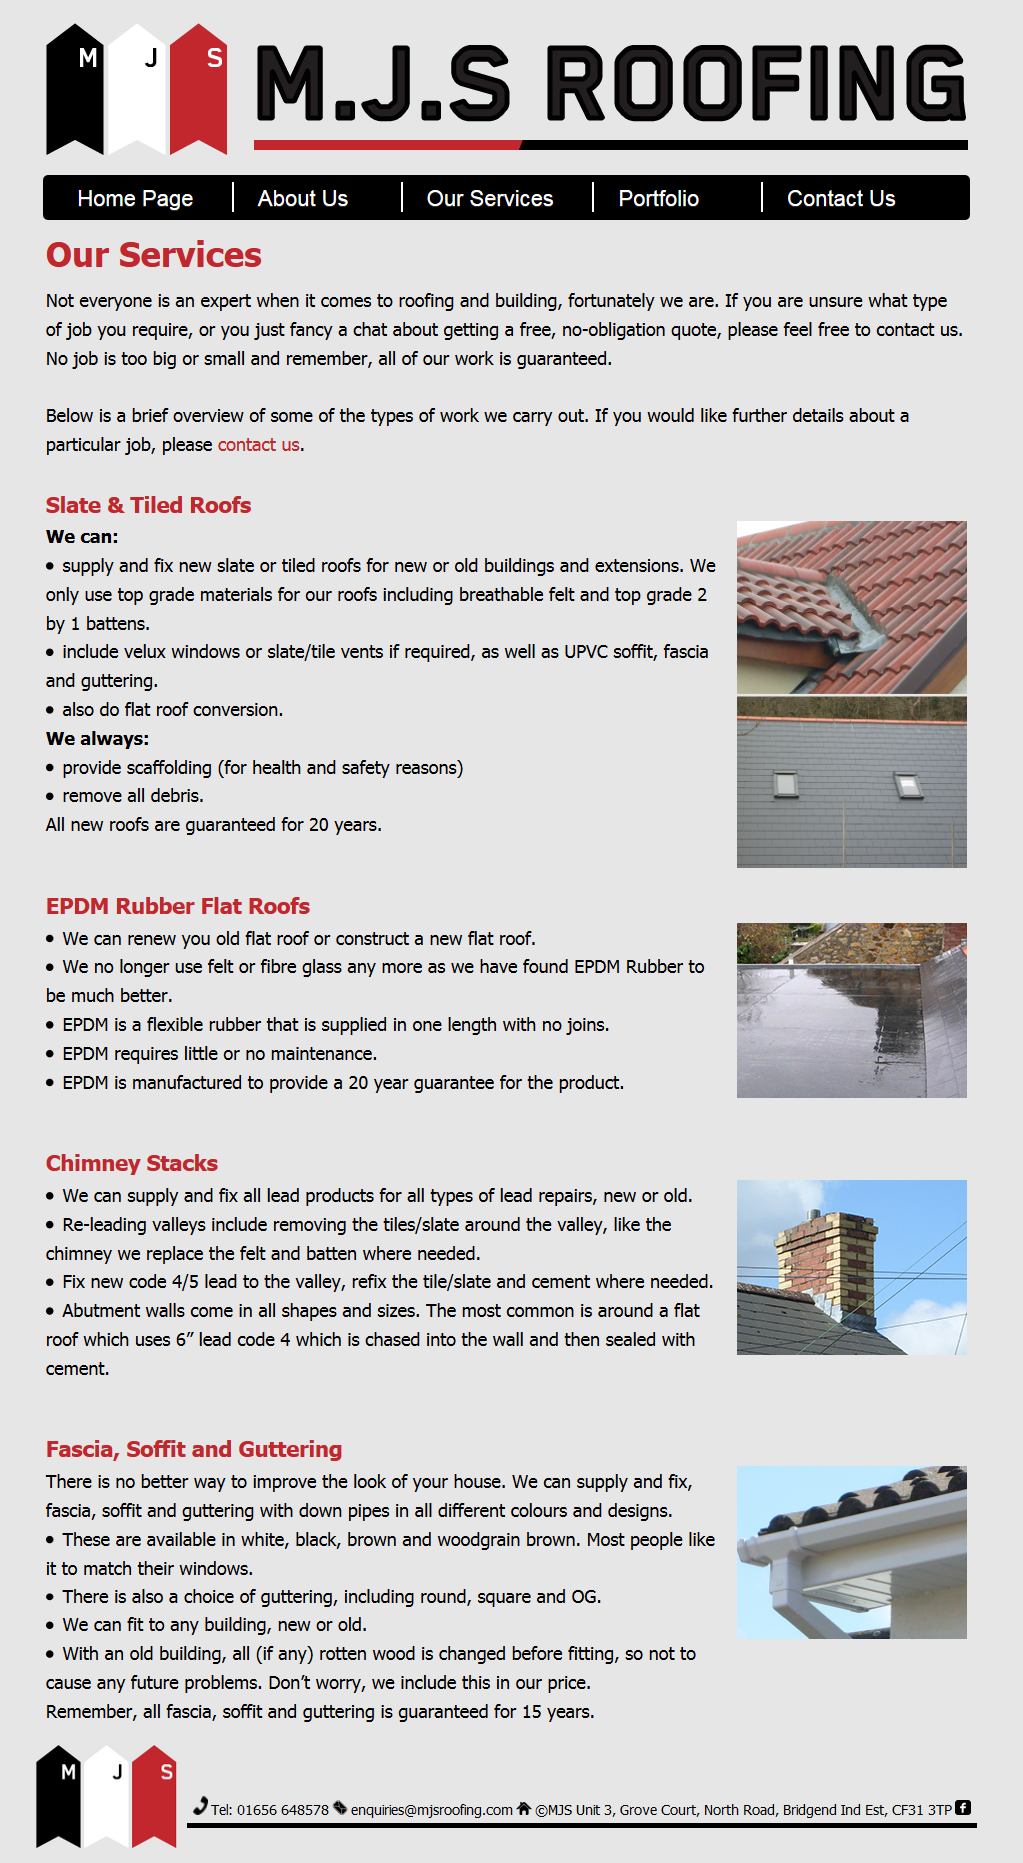 An image from the MJS Roofing website